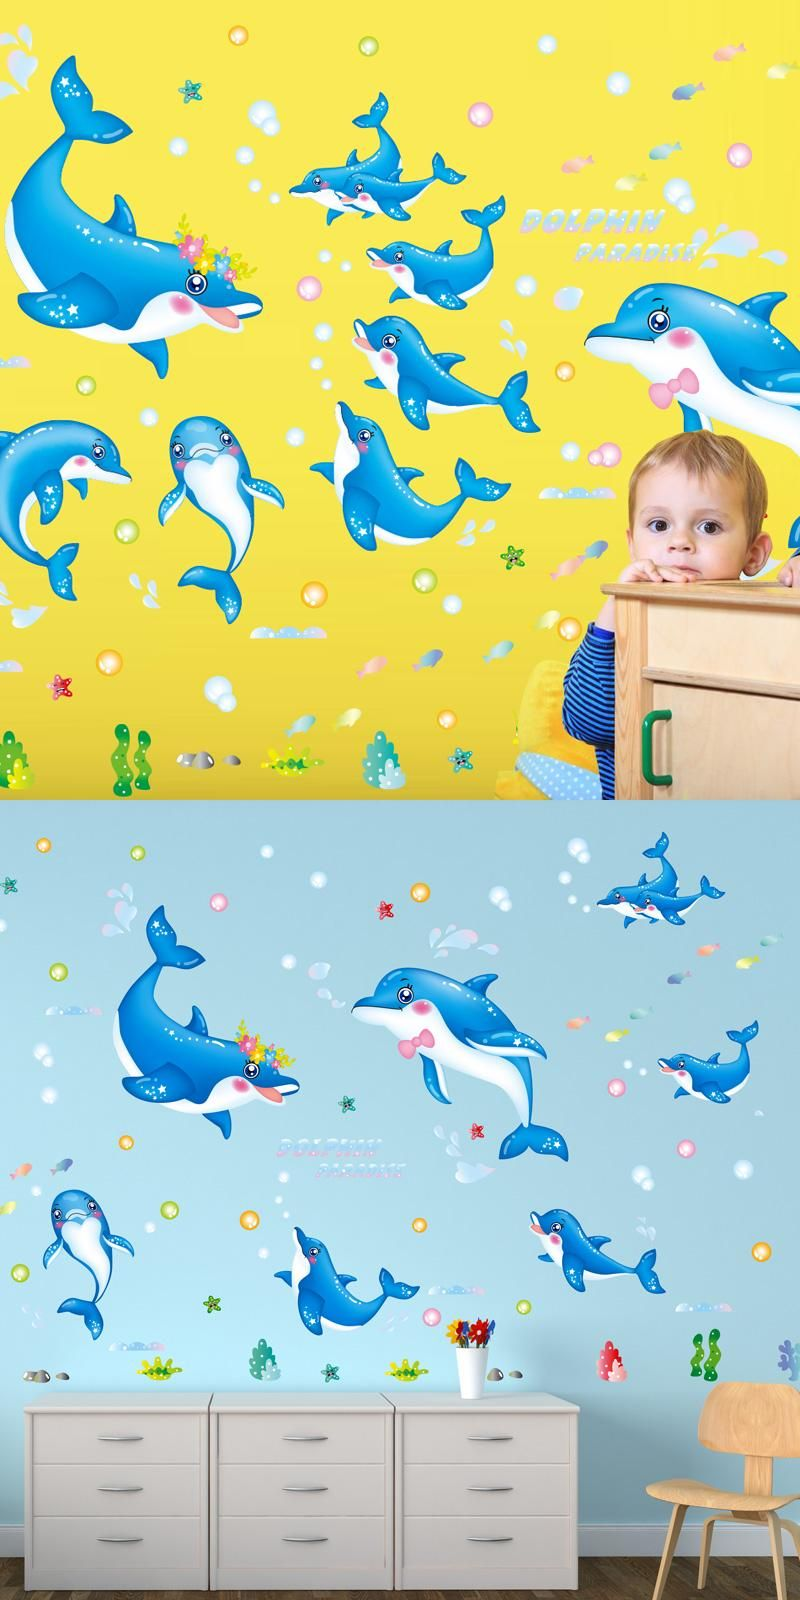 Dolphin Lovers Wall Stickers Animal Cartoon Wall Decals Poster for ...